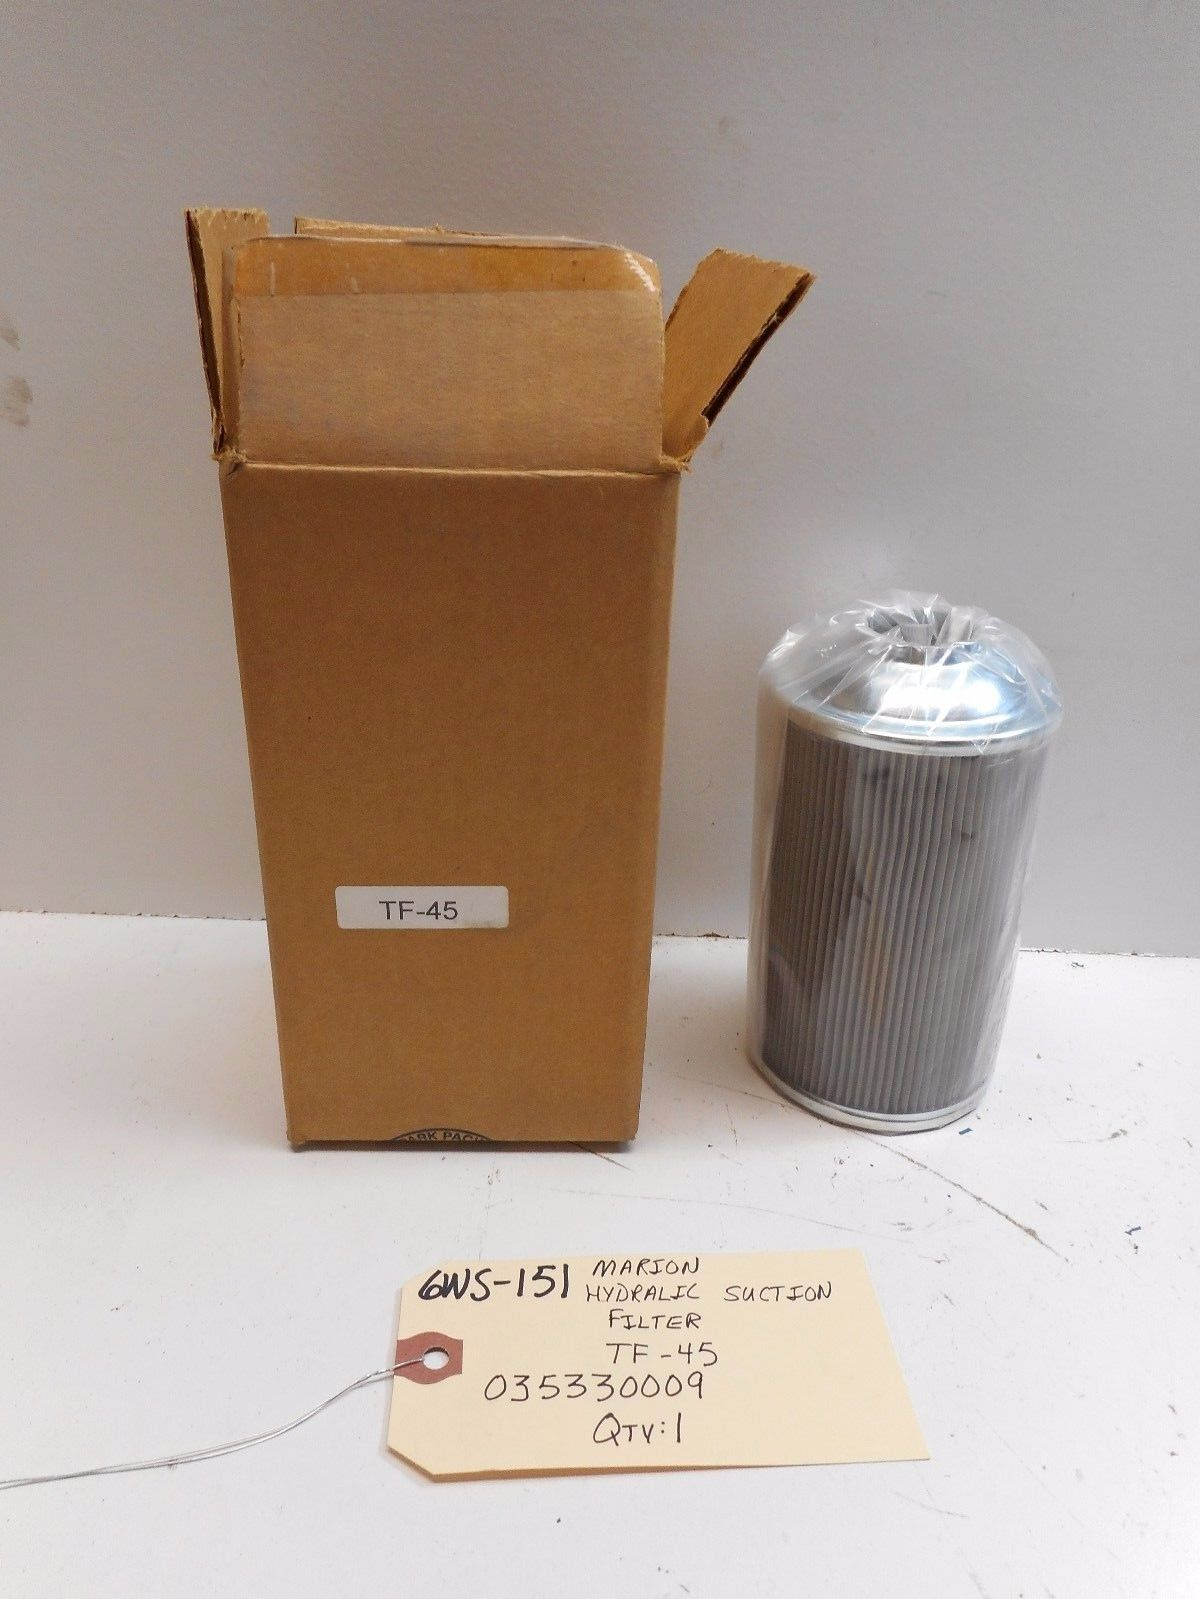 MARION HYDRAULIC SUCTION FILTER 035330009 TF-45 *FREE SHIPPING*